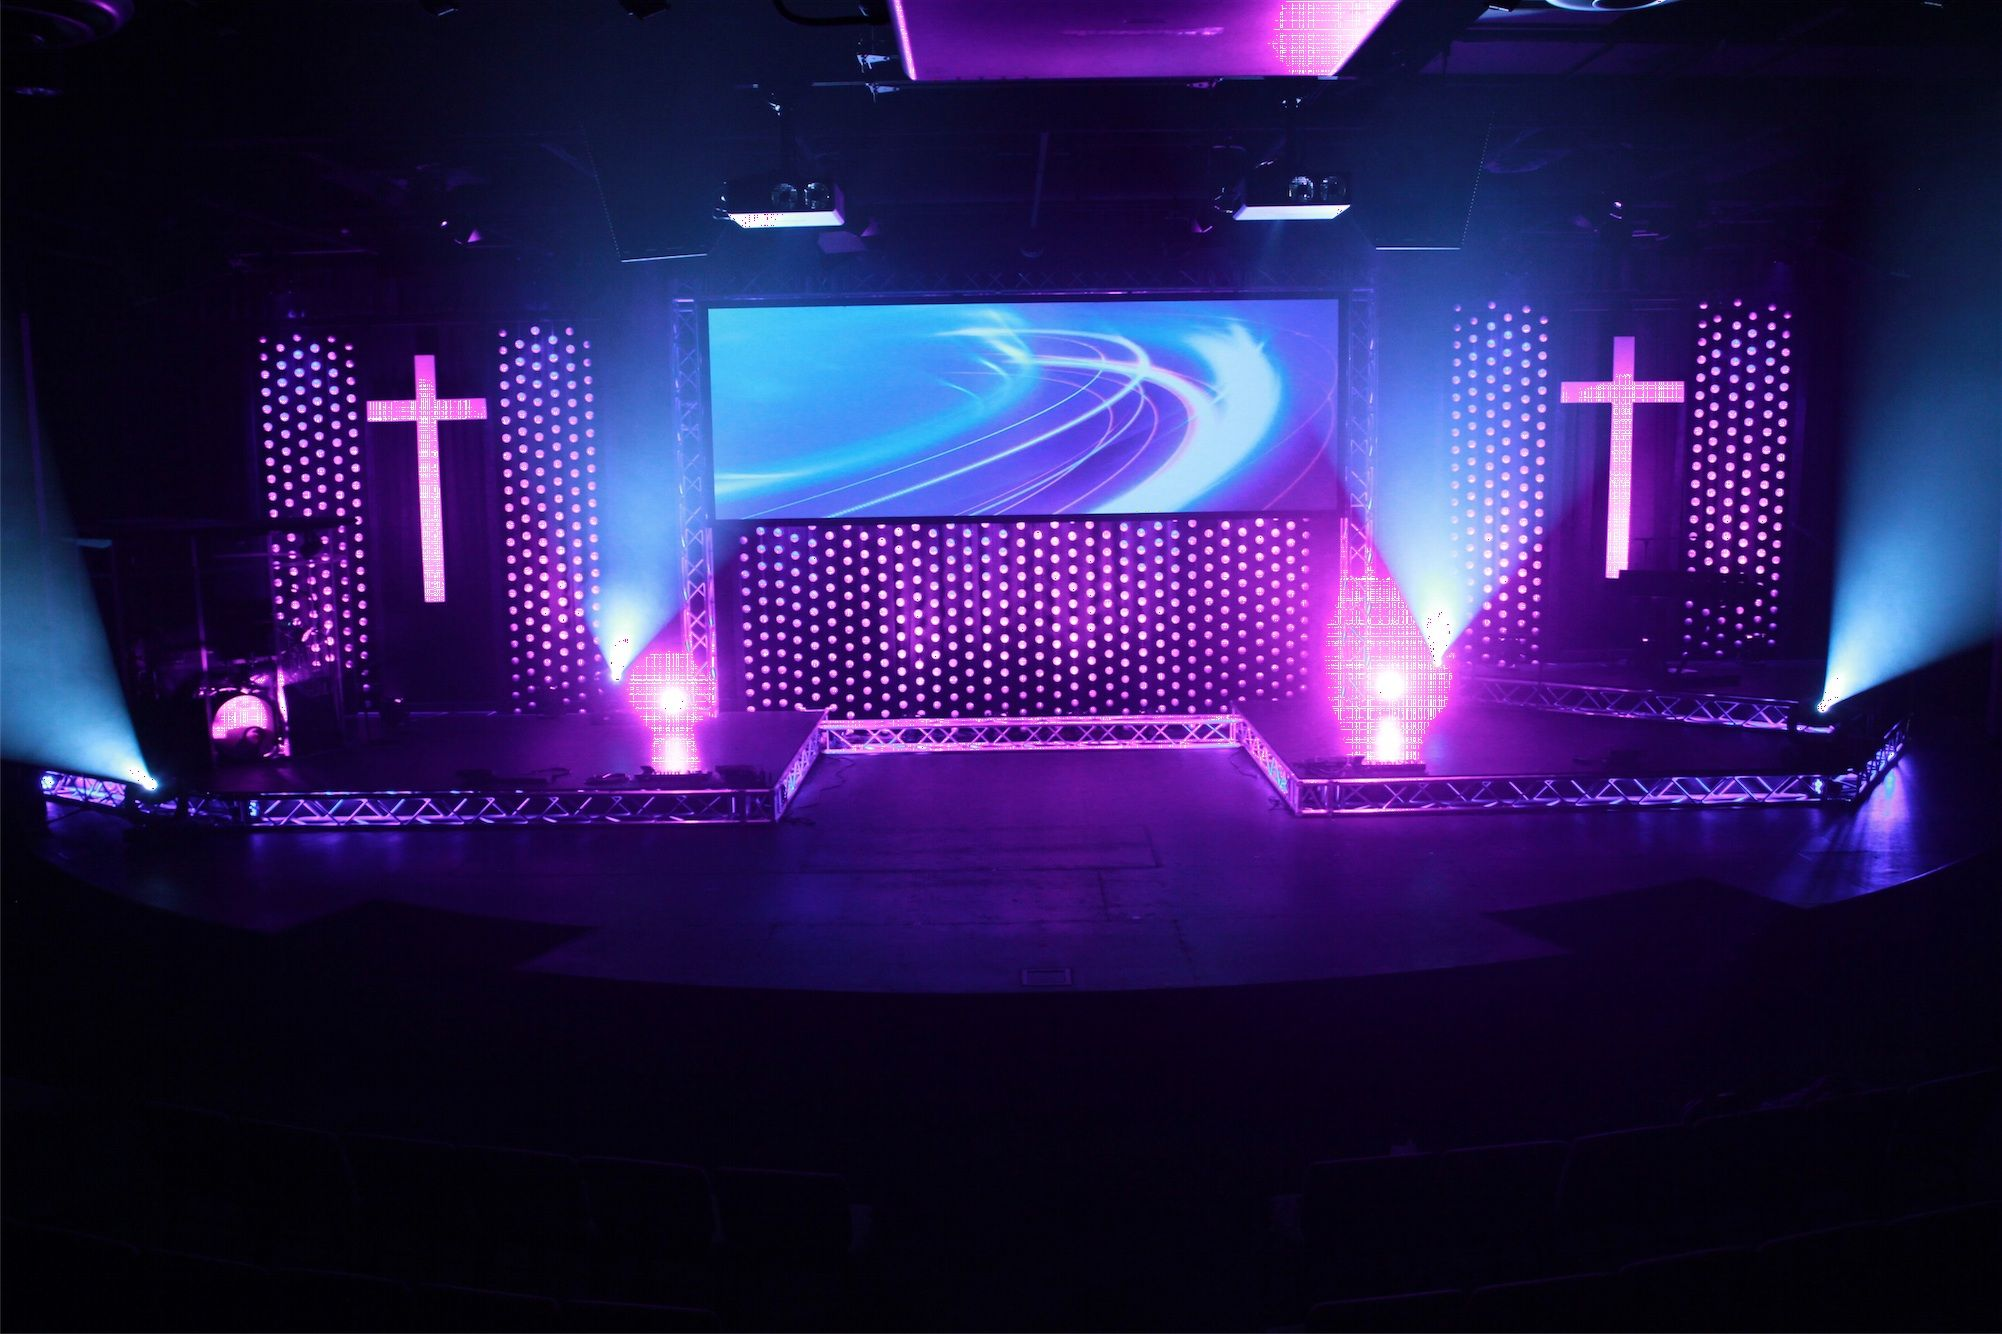 awesome church backdrop more stage design ideas - Church Design Ideas